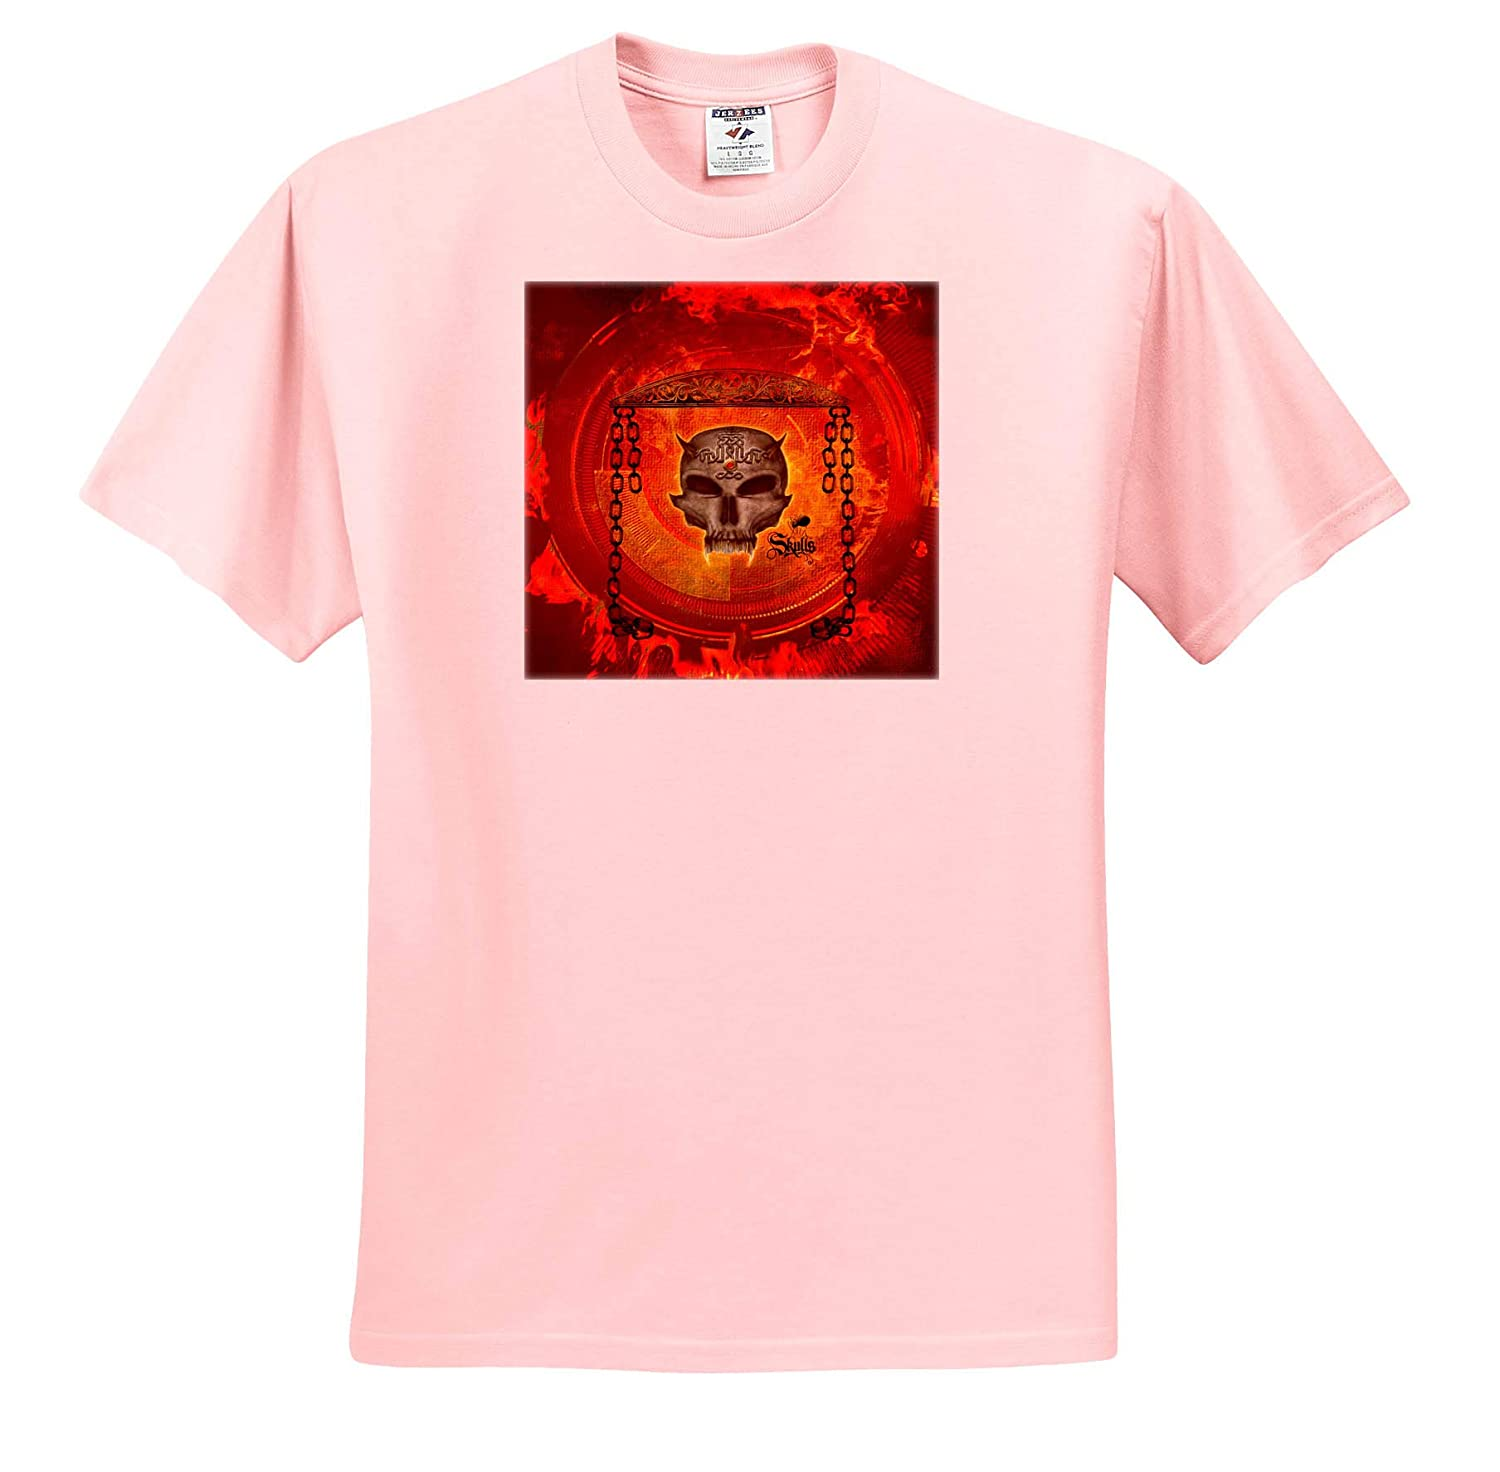 3dRose Heike K/öhnen Design Skull ts/_310280 Adult T-Shirt XL Awesome Skull with Celtic Knot